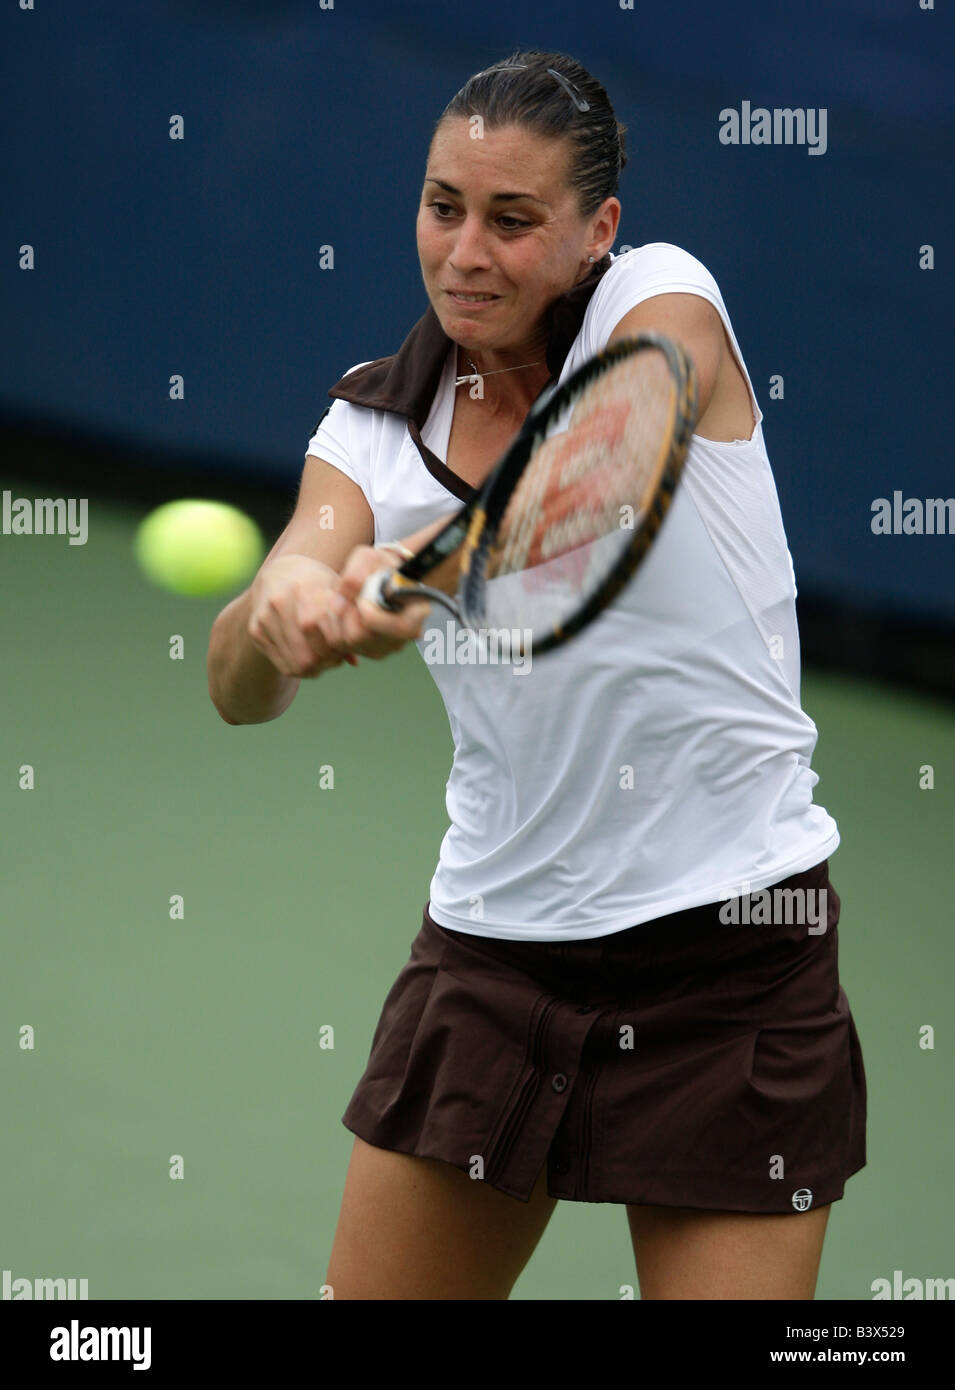 Tennis pro Flavia Pennetta (ITA) in action at the US Open Stock Photo